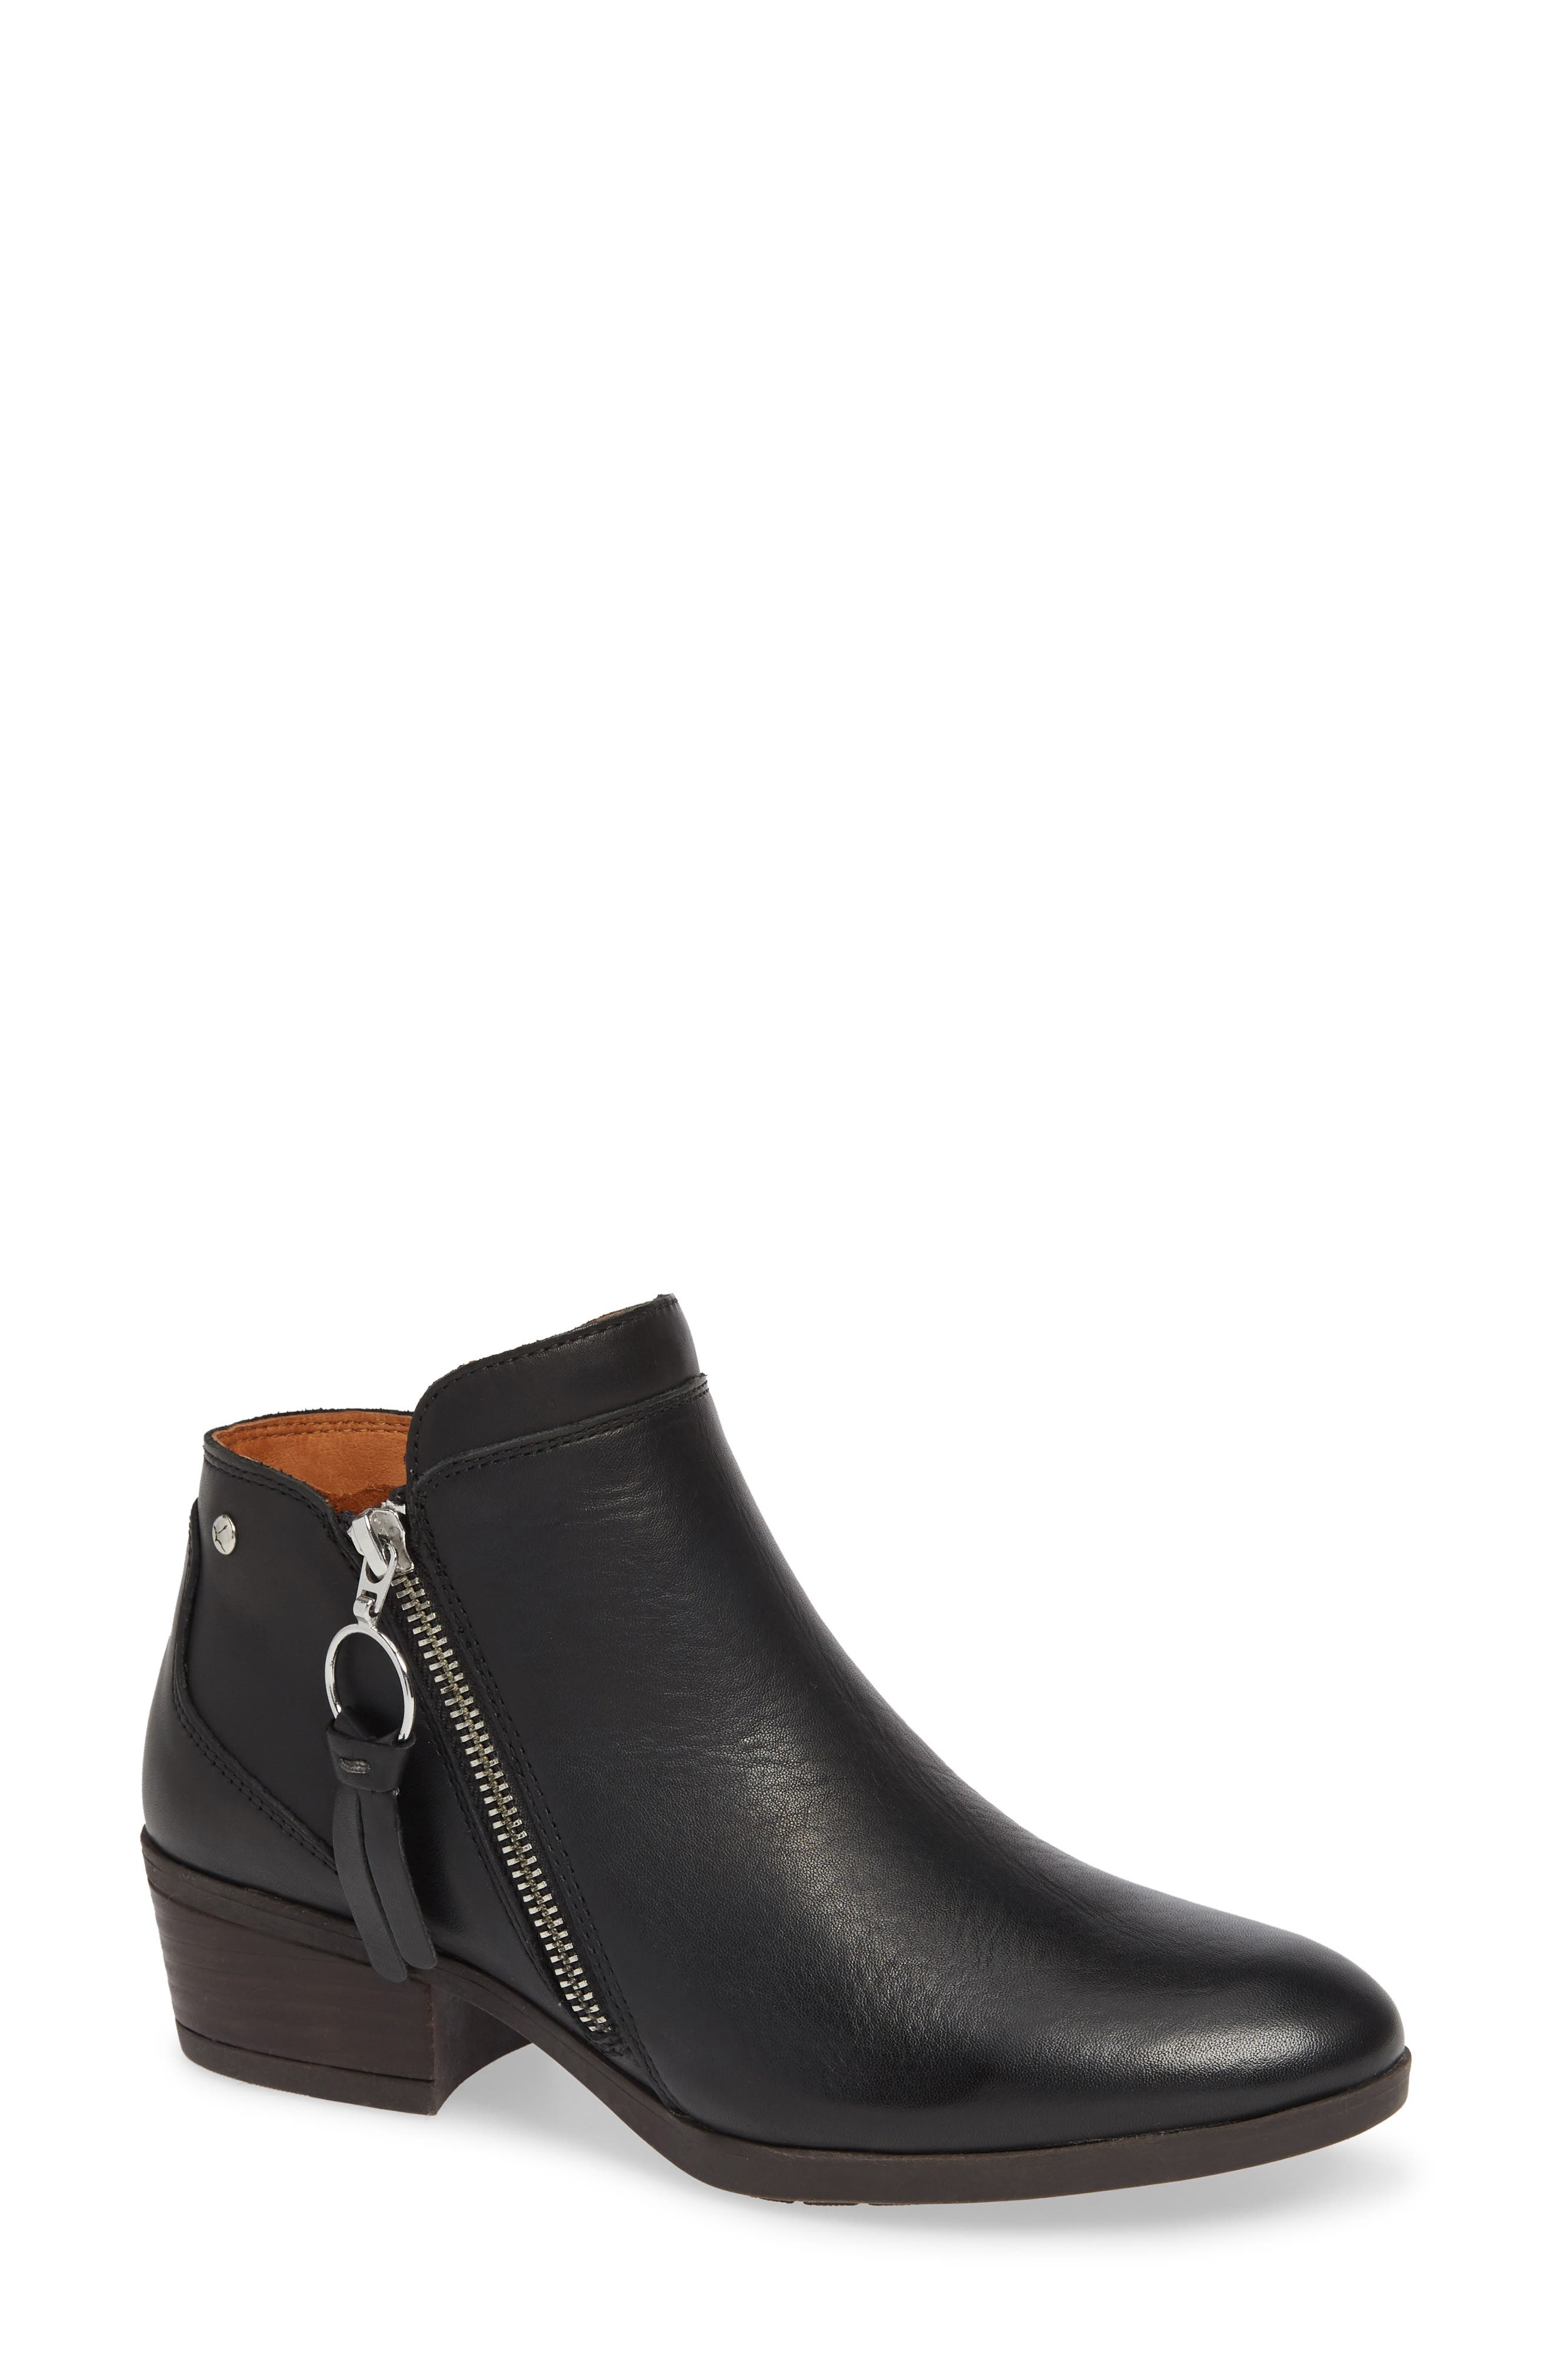 Daroca Bootie,                             Main thumbnail 1, color,                             BLACK LEATHER